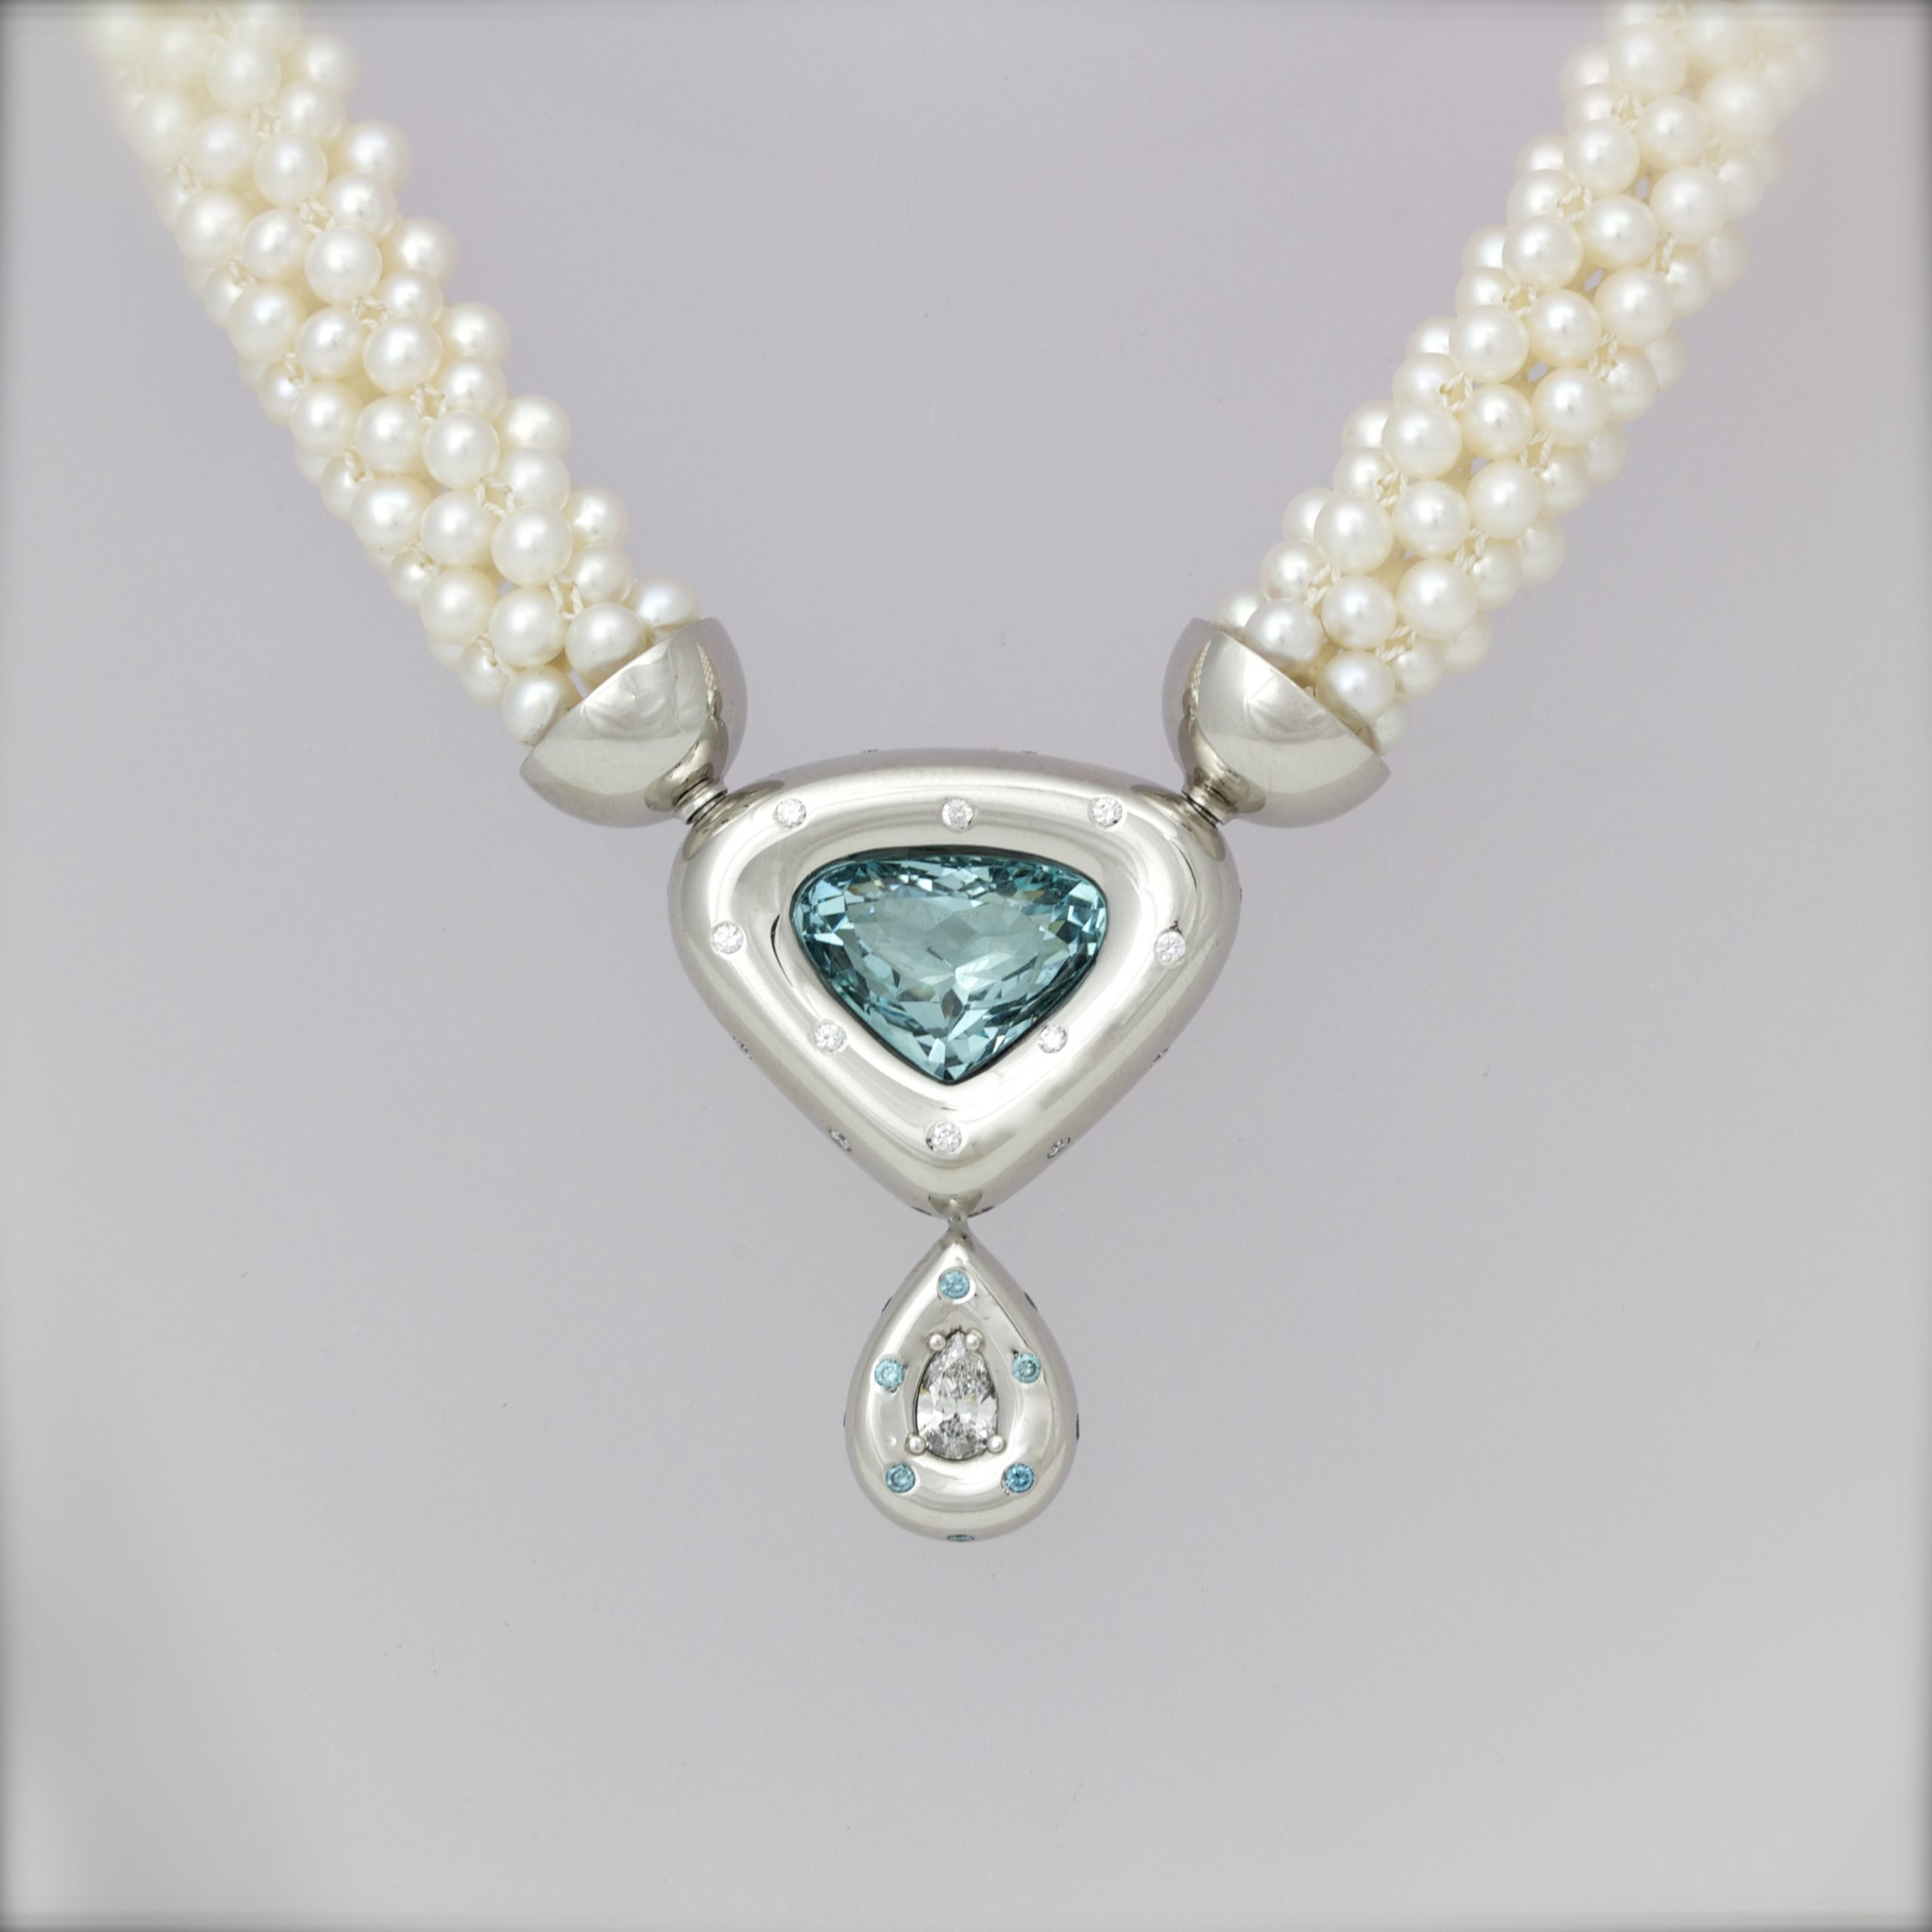 Blue & white diamond necklace in platinum on pearls